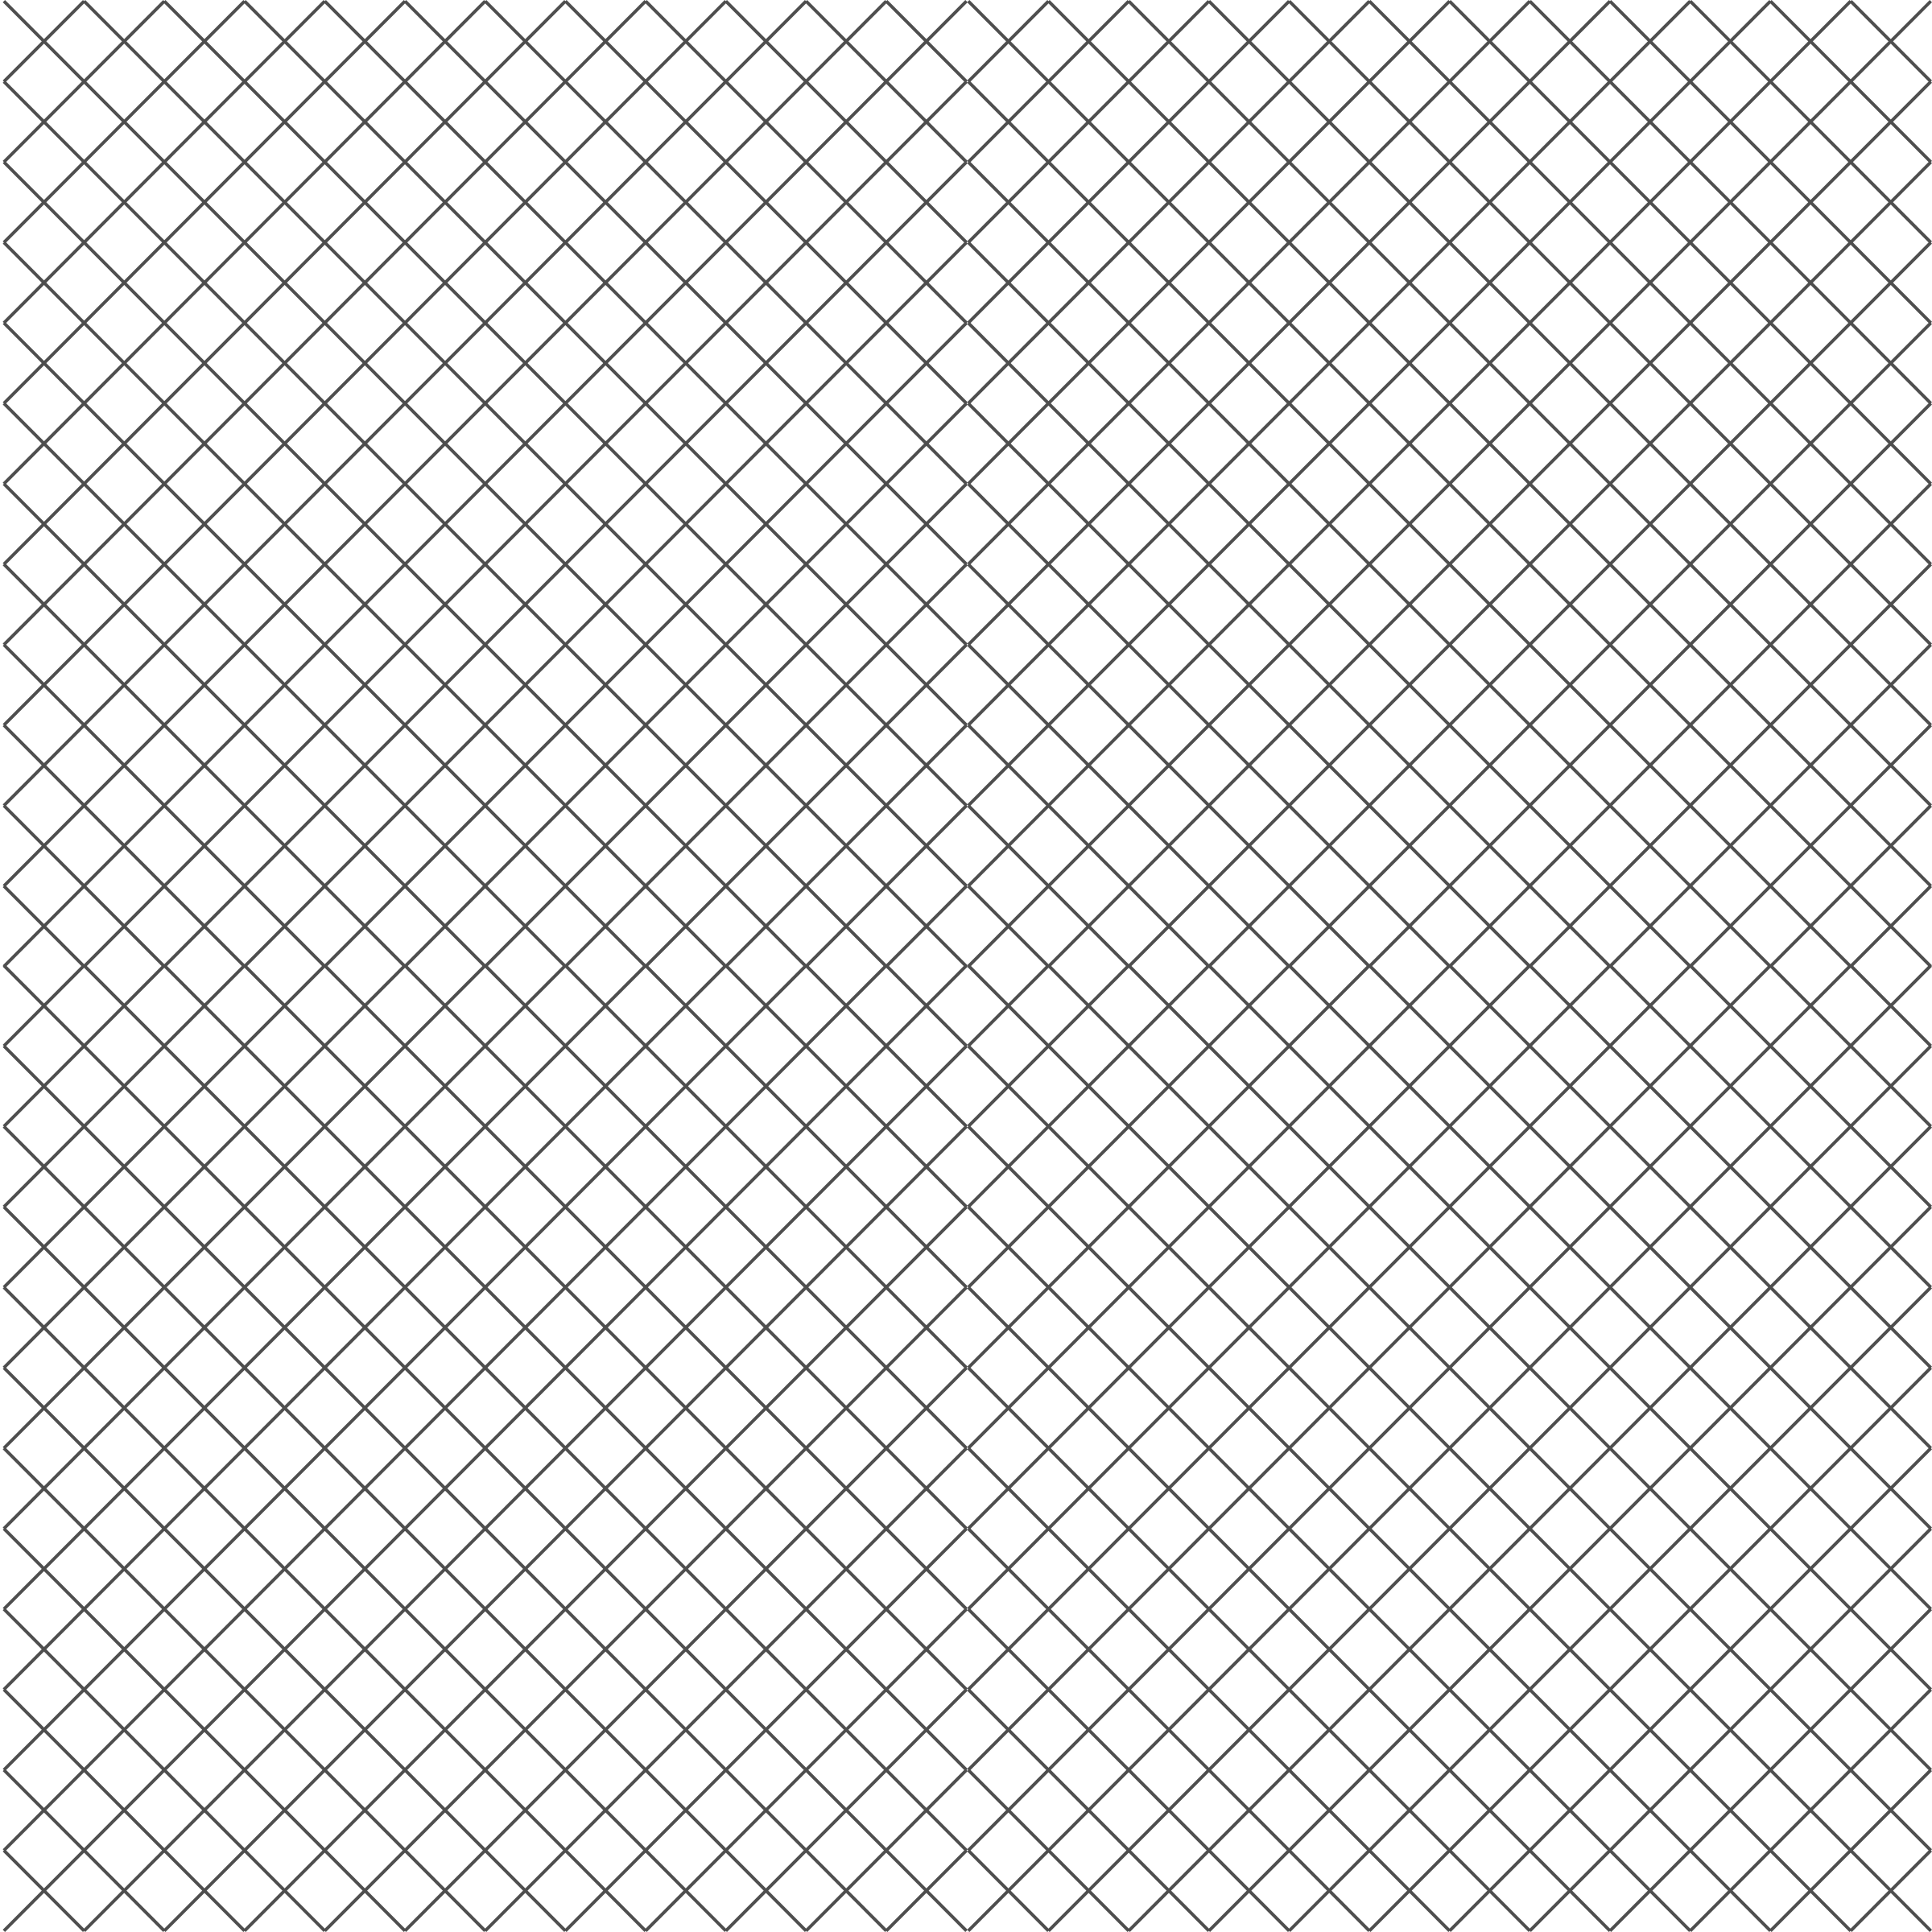 Png mesh. Icons free and downloads